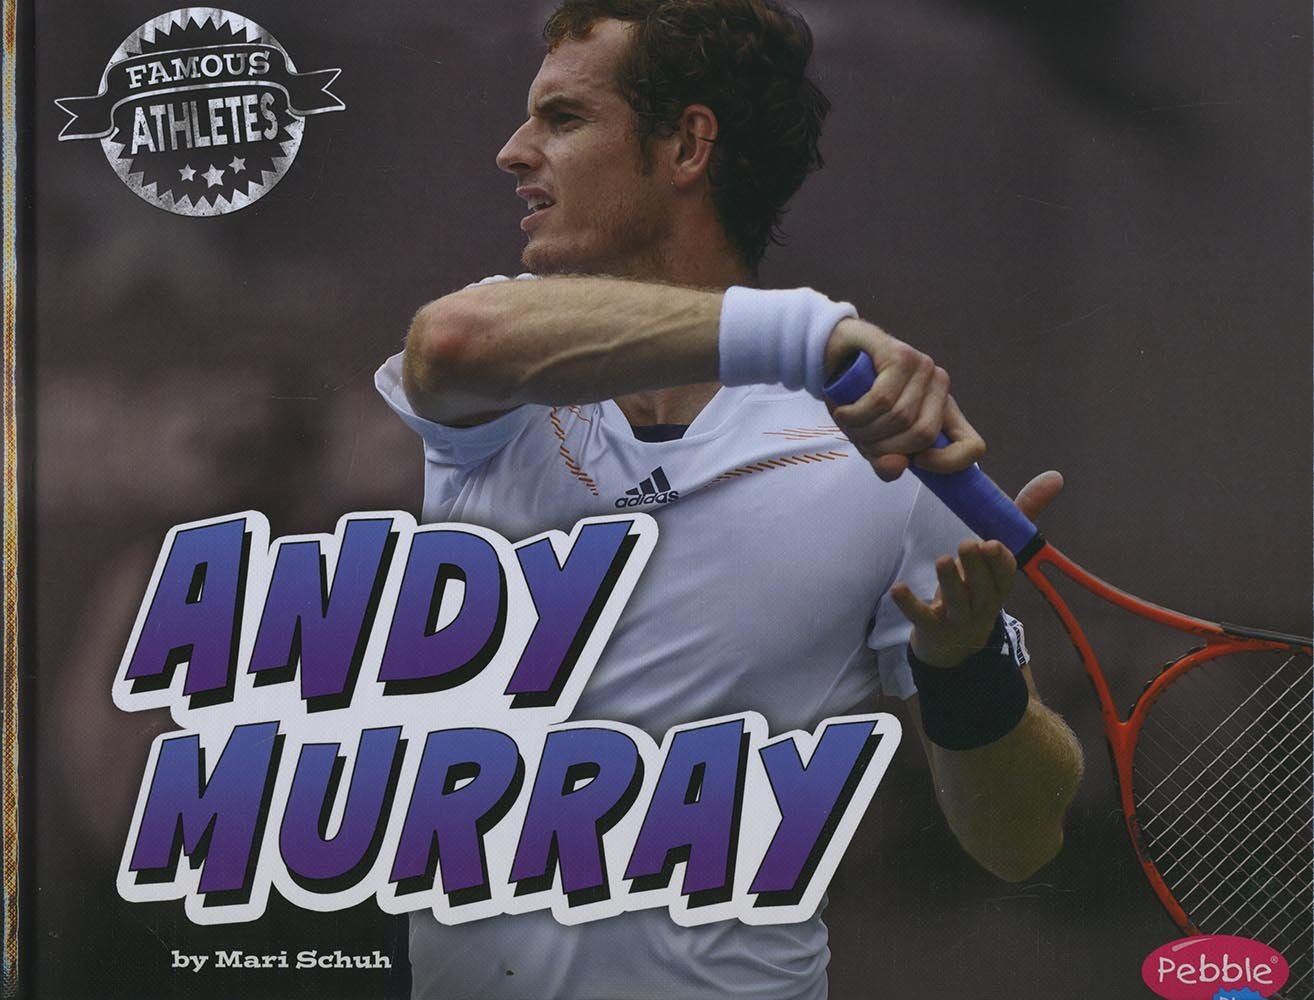 Andy Murray (Famous Athletes)